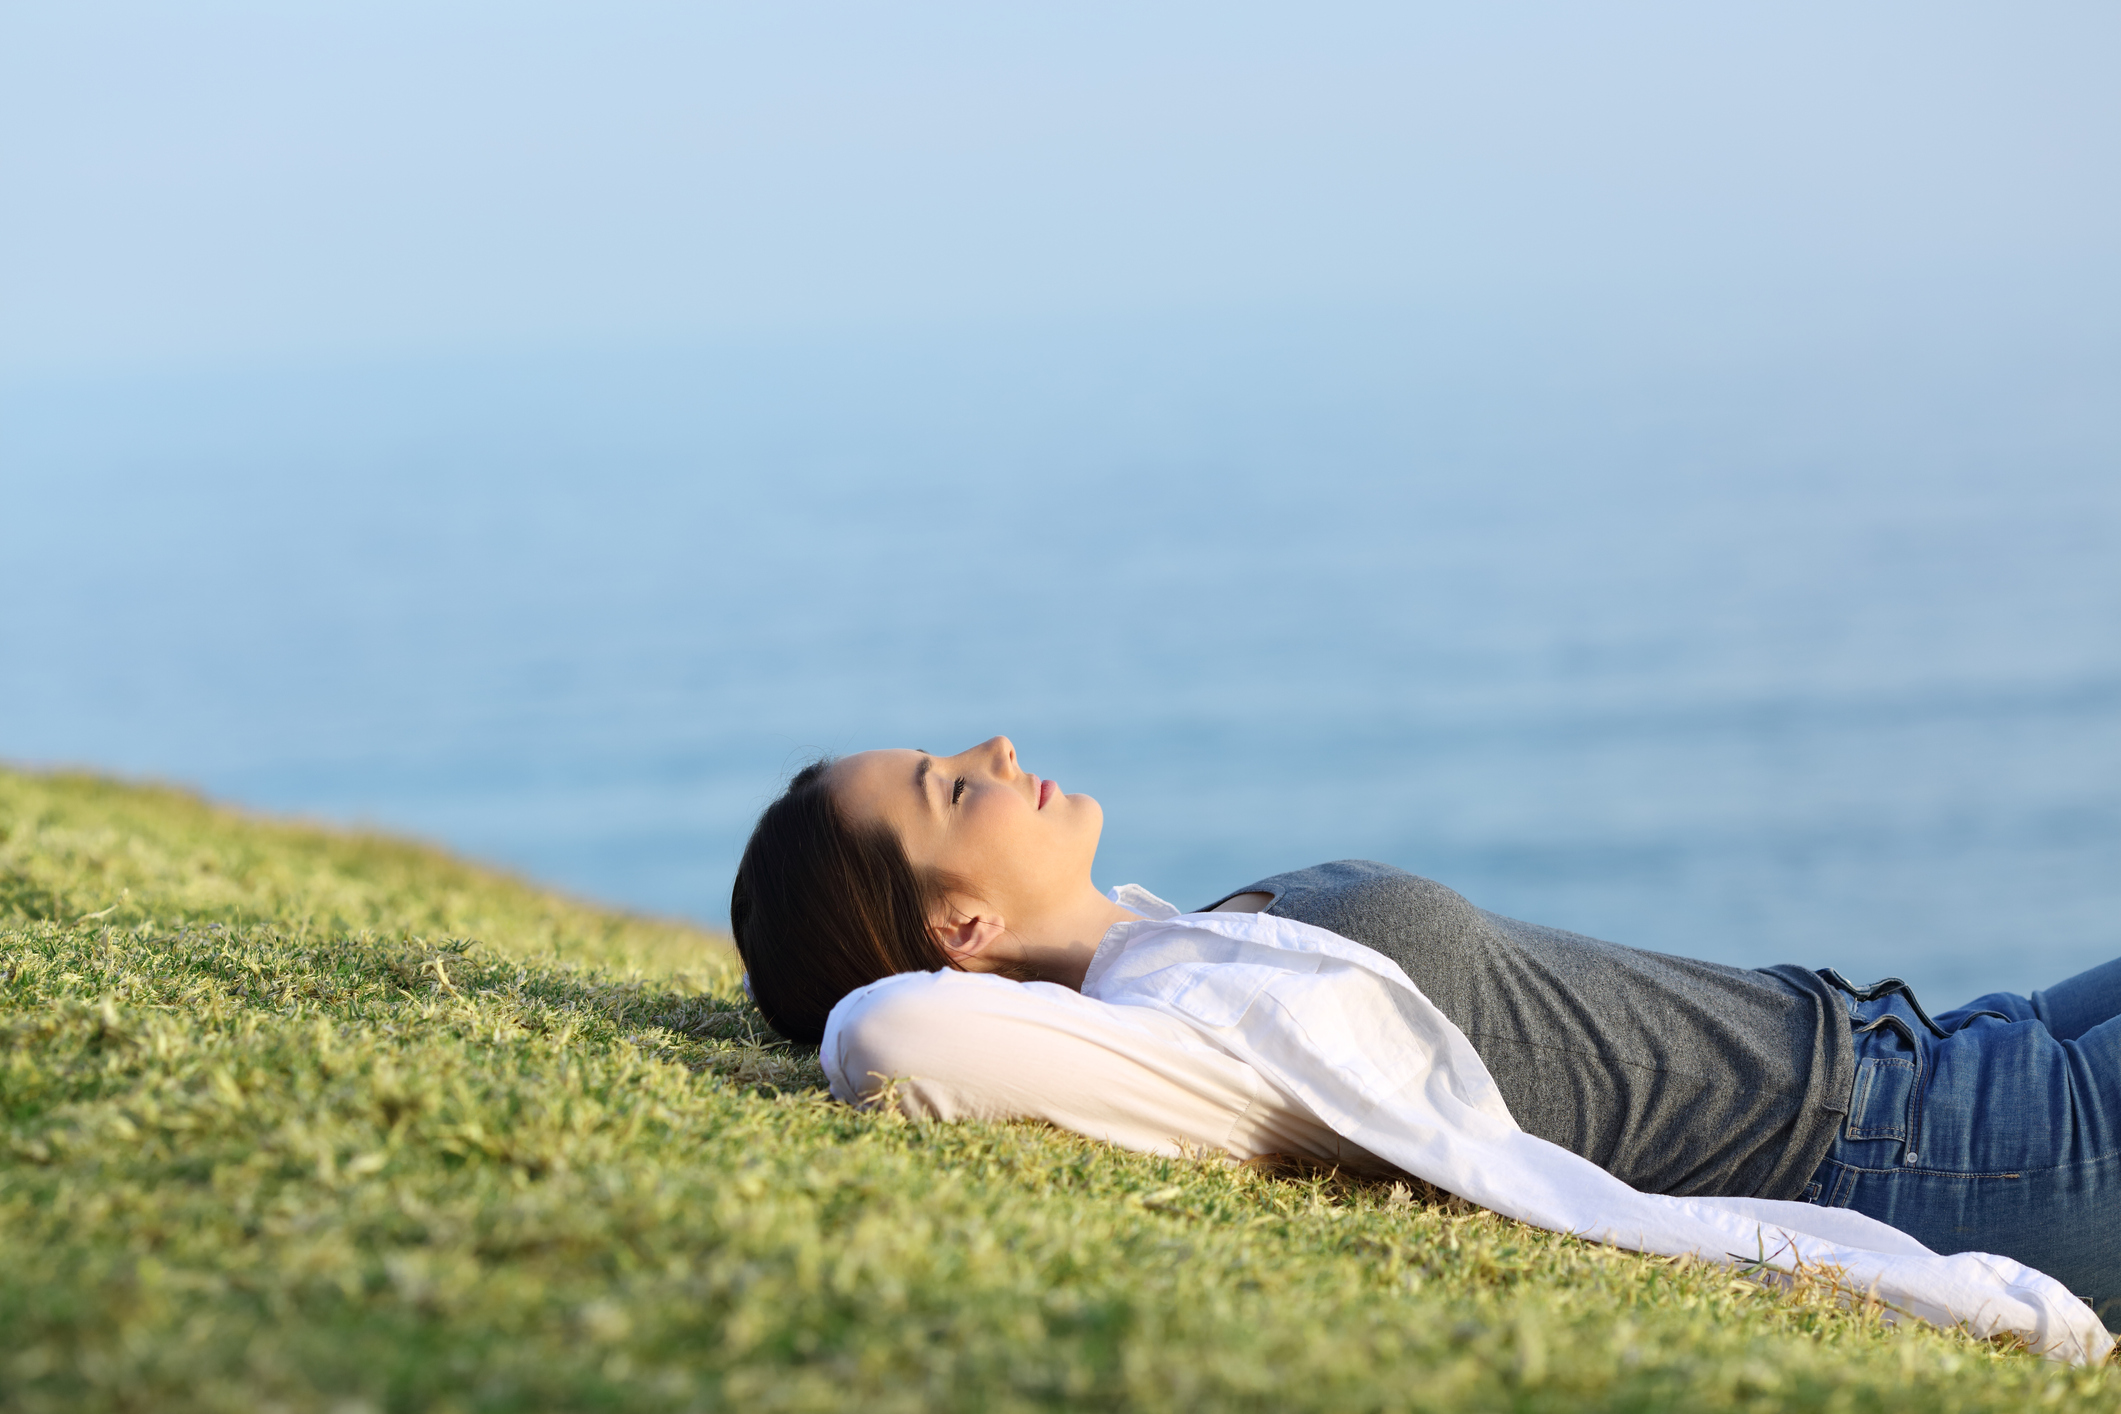 Relaxed woman lying on a grassy hill overlooking the ocean.